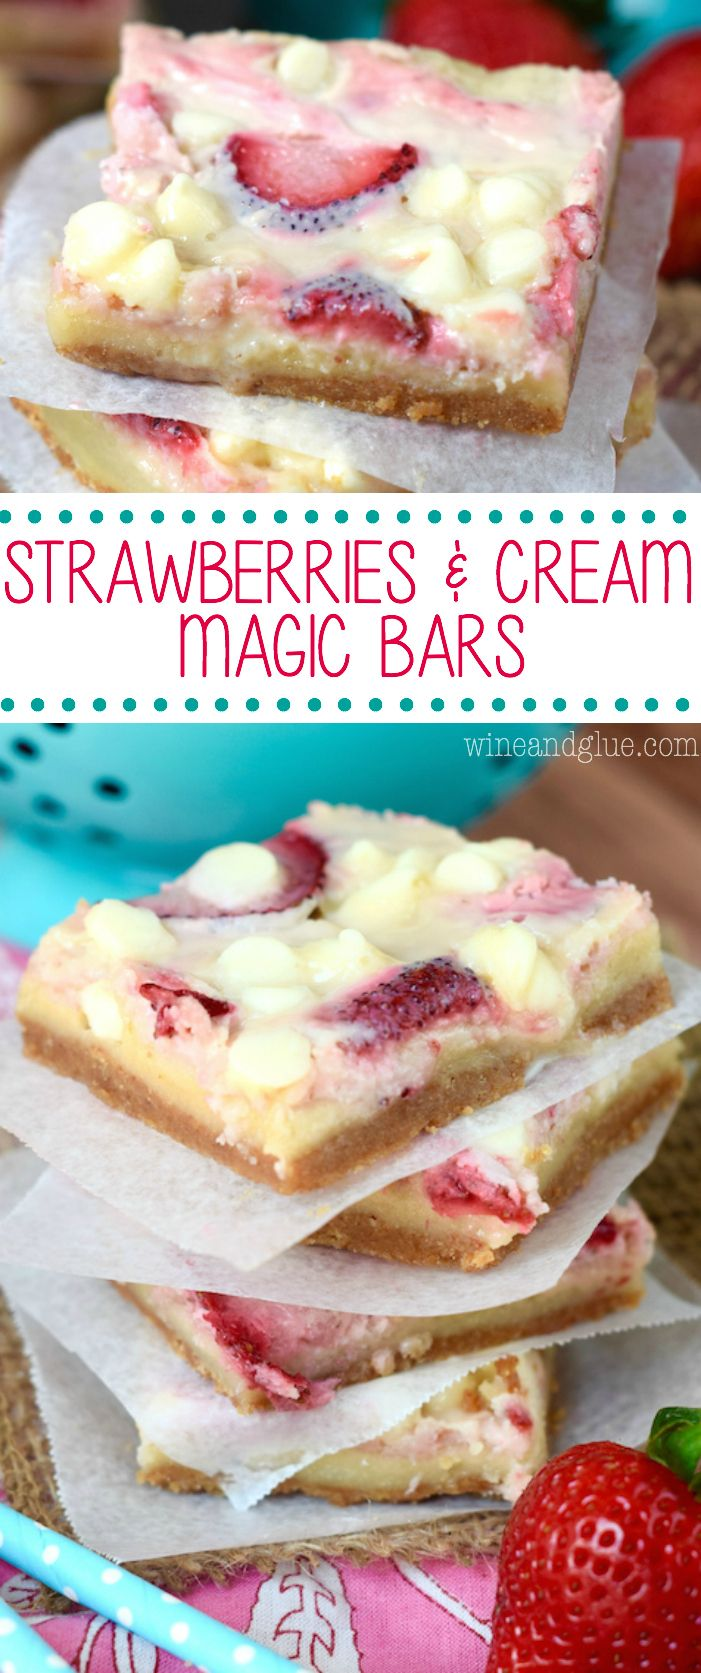 new jordans    These Strawberries and Cream Magic Bars are pure magic Made with fresh strawberries and a sugar cookie layer they are seriously amazing